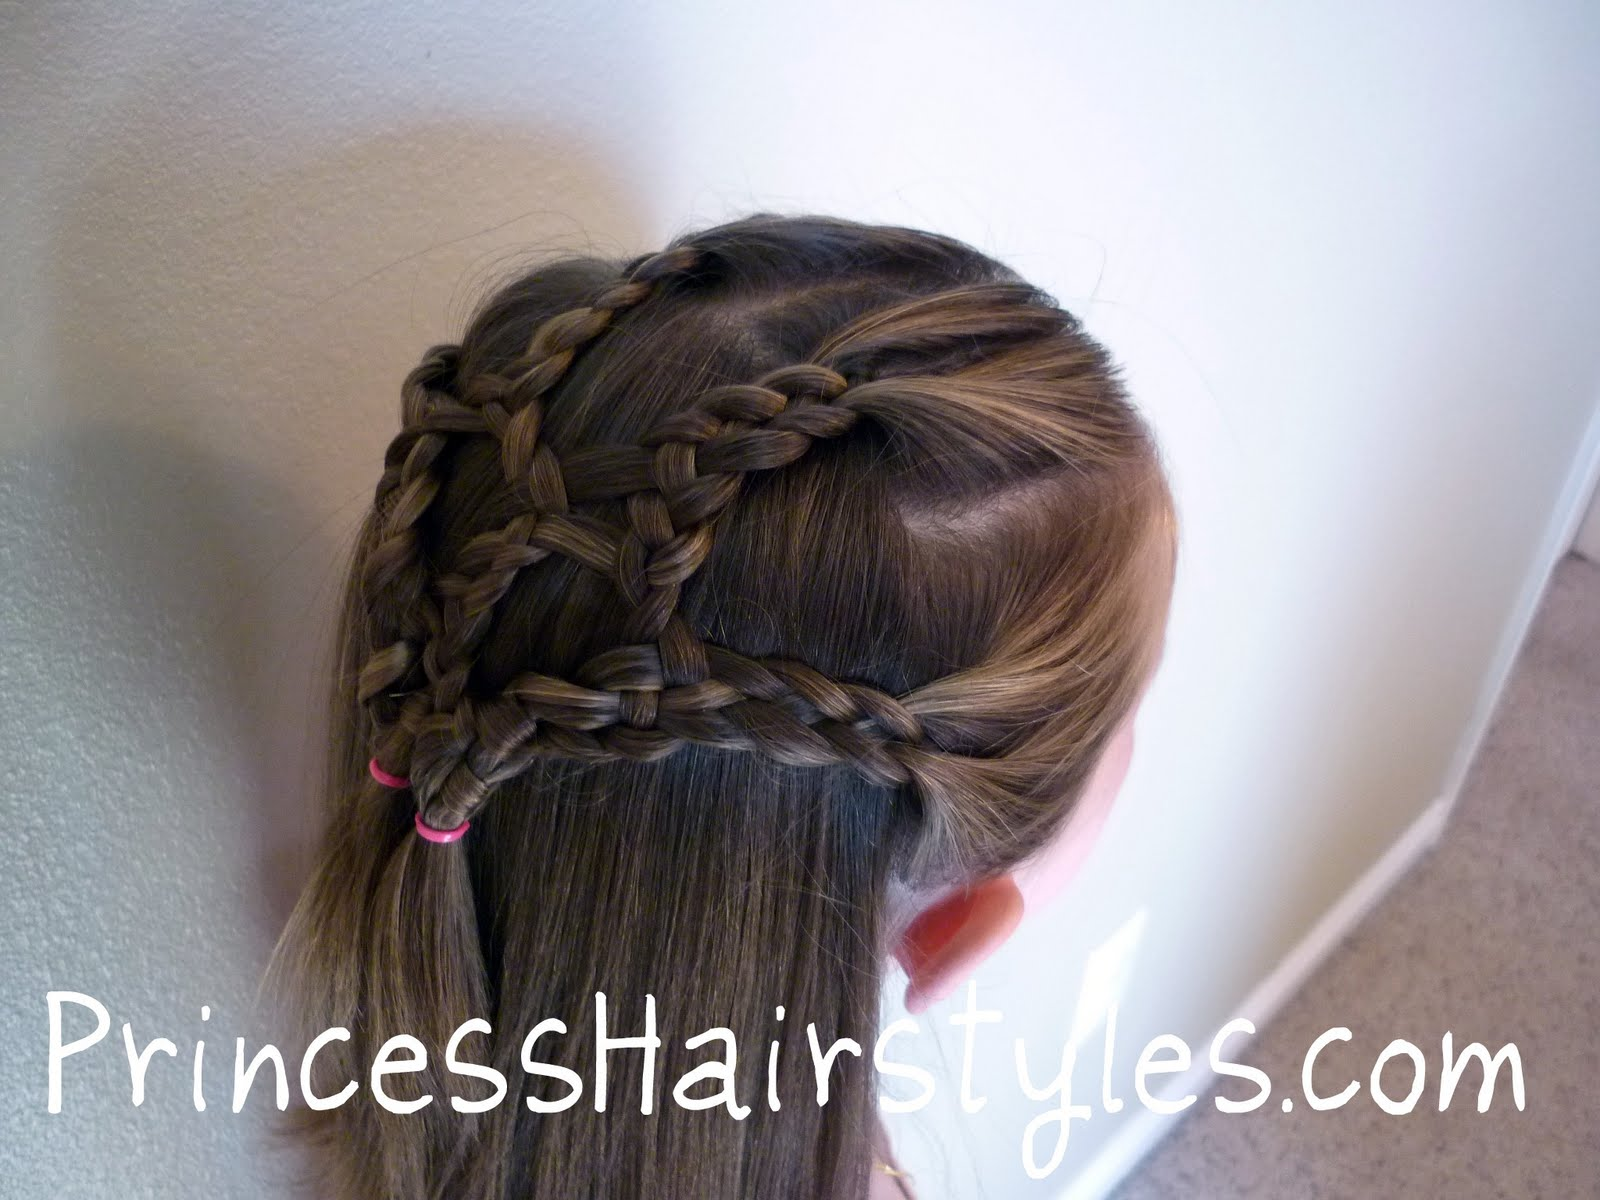 Braided Hair Styles For Little Girls: Hairstyles For Girls - Princess